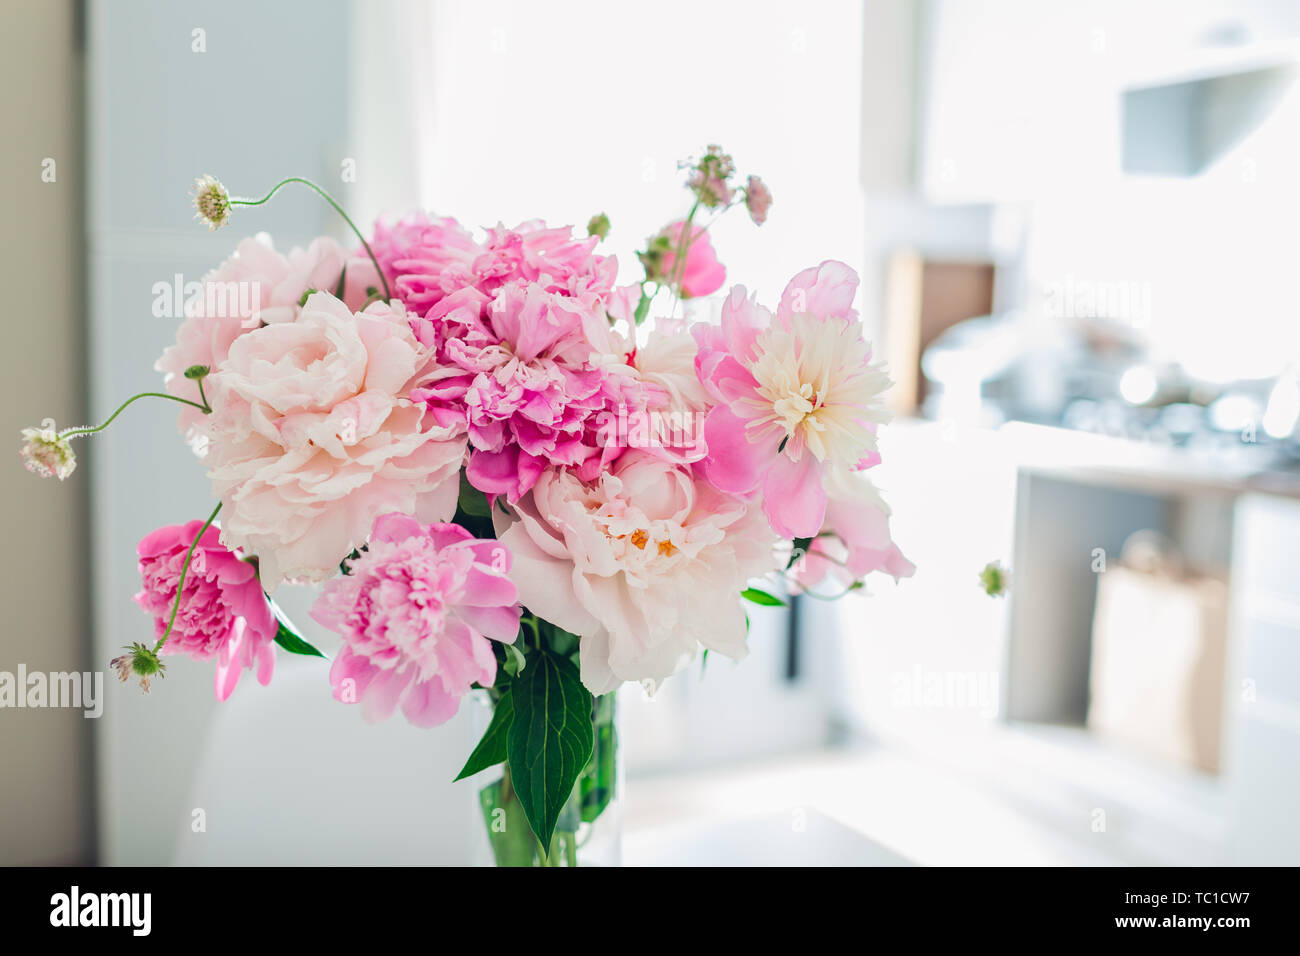 Pink Peonies Modern Kitchen Design Interior Of White And Silver Kitchen Decorated With Bouquet Of Fresh Flowers Stock Photo Alamy